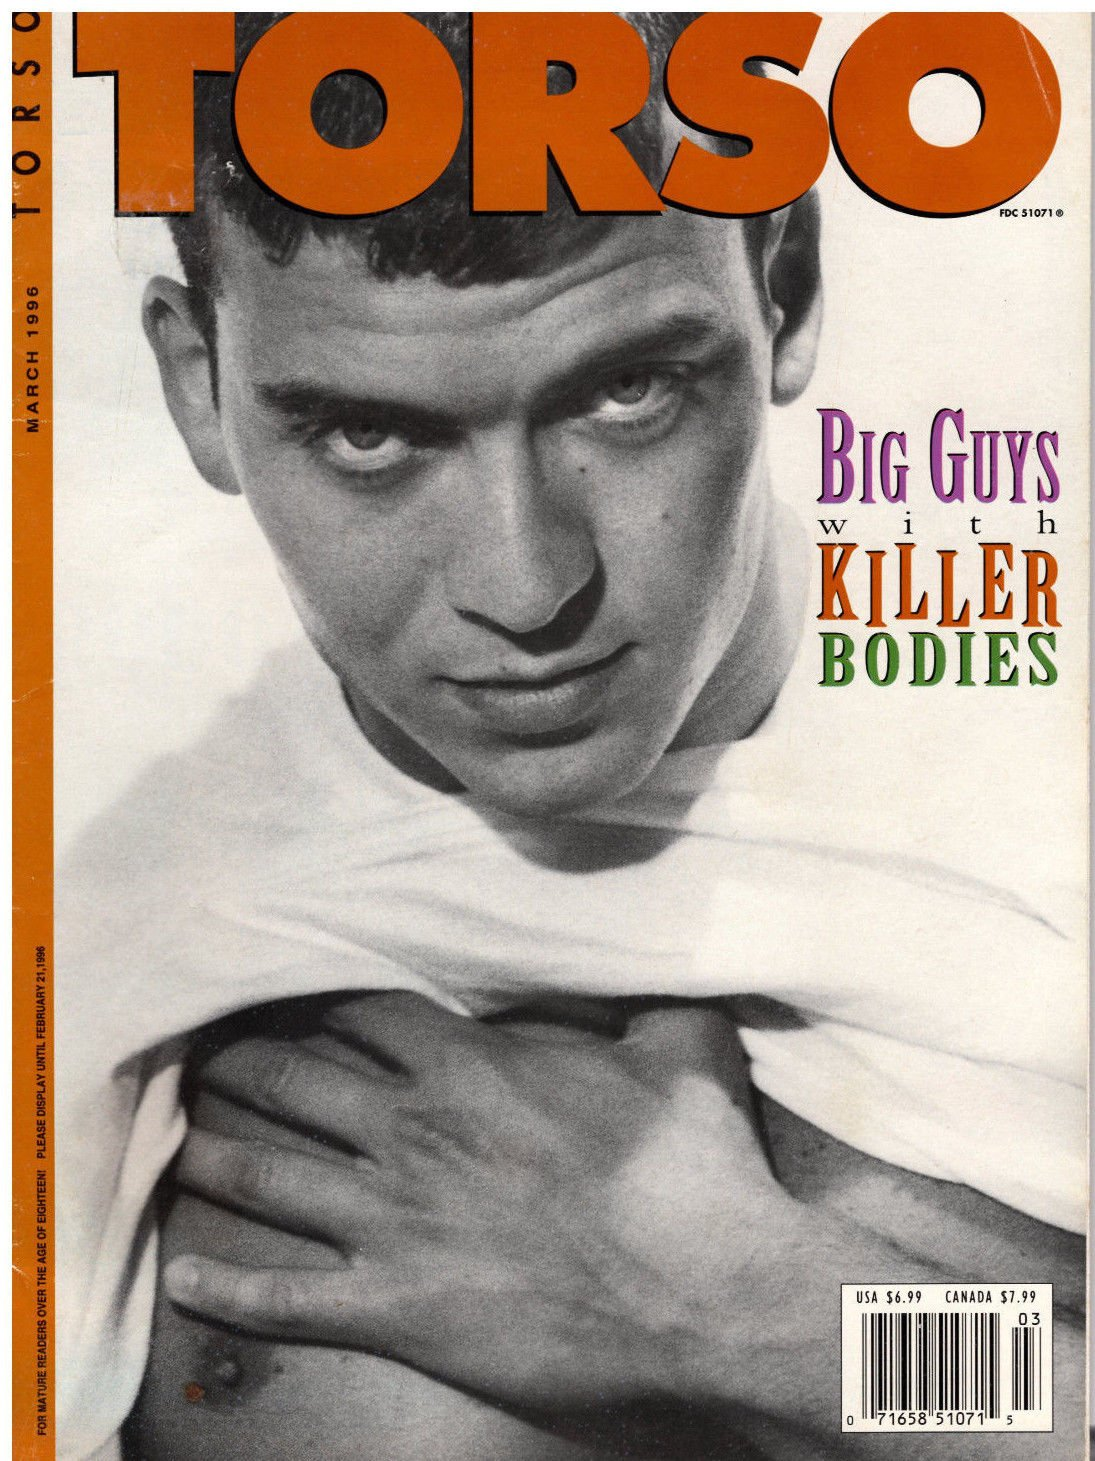 Torso Magazine - March 1996 - Carlos Morales (Big Guys with Killer Bodies)  - Adult Gay Male Interest Single Issue Magazine – 1996